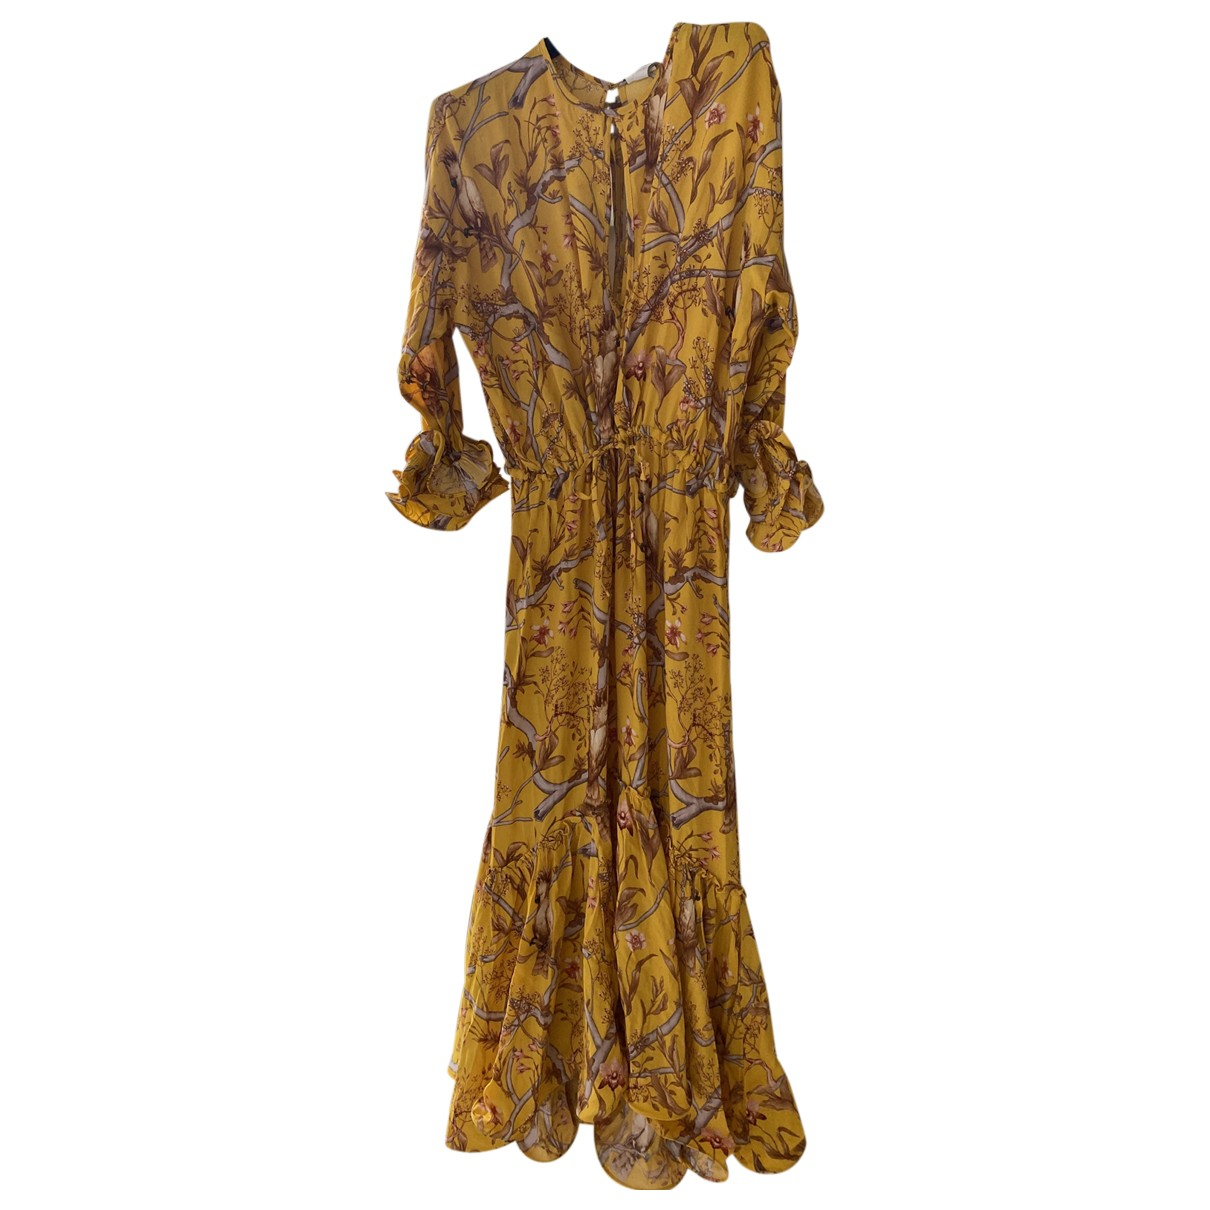 Johanna Ortiz X H&m \N Yellow Cotton dress for Women 8 UK